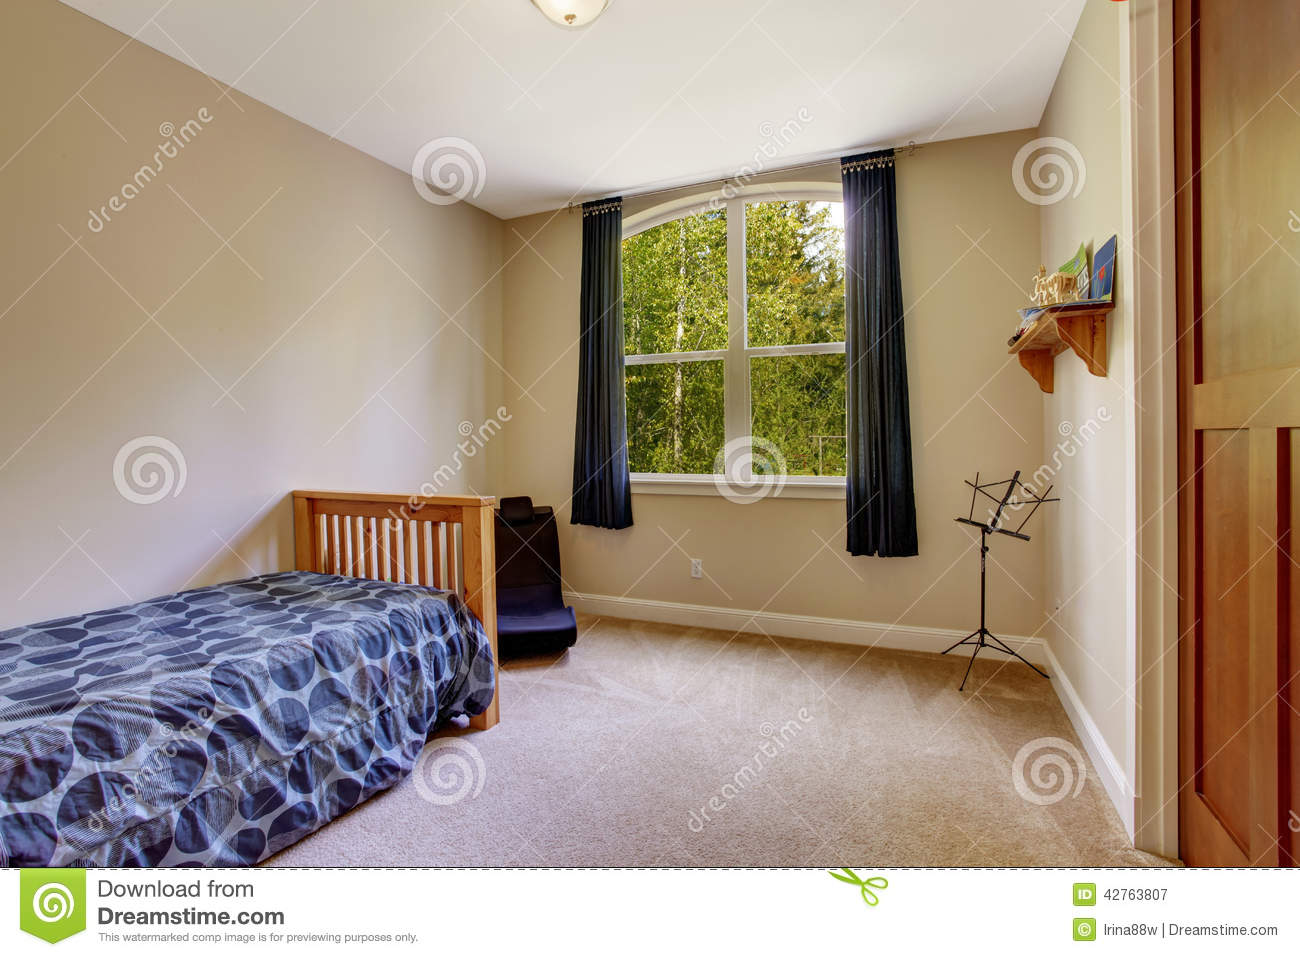 Simple Bedroom With Single Bed small bedroom with single bed stock photo - image: 42763807